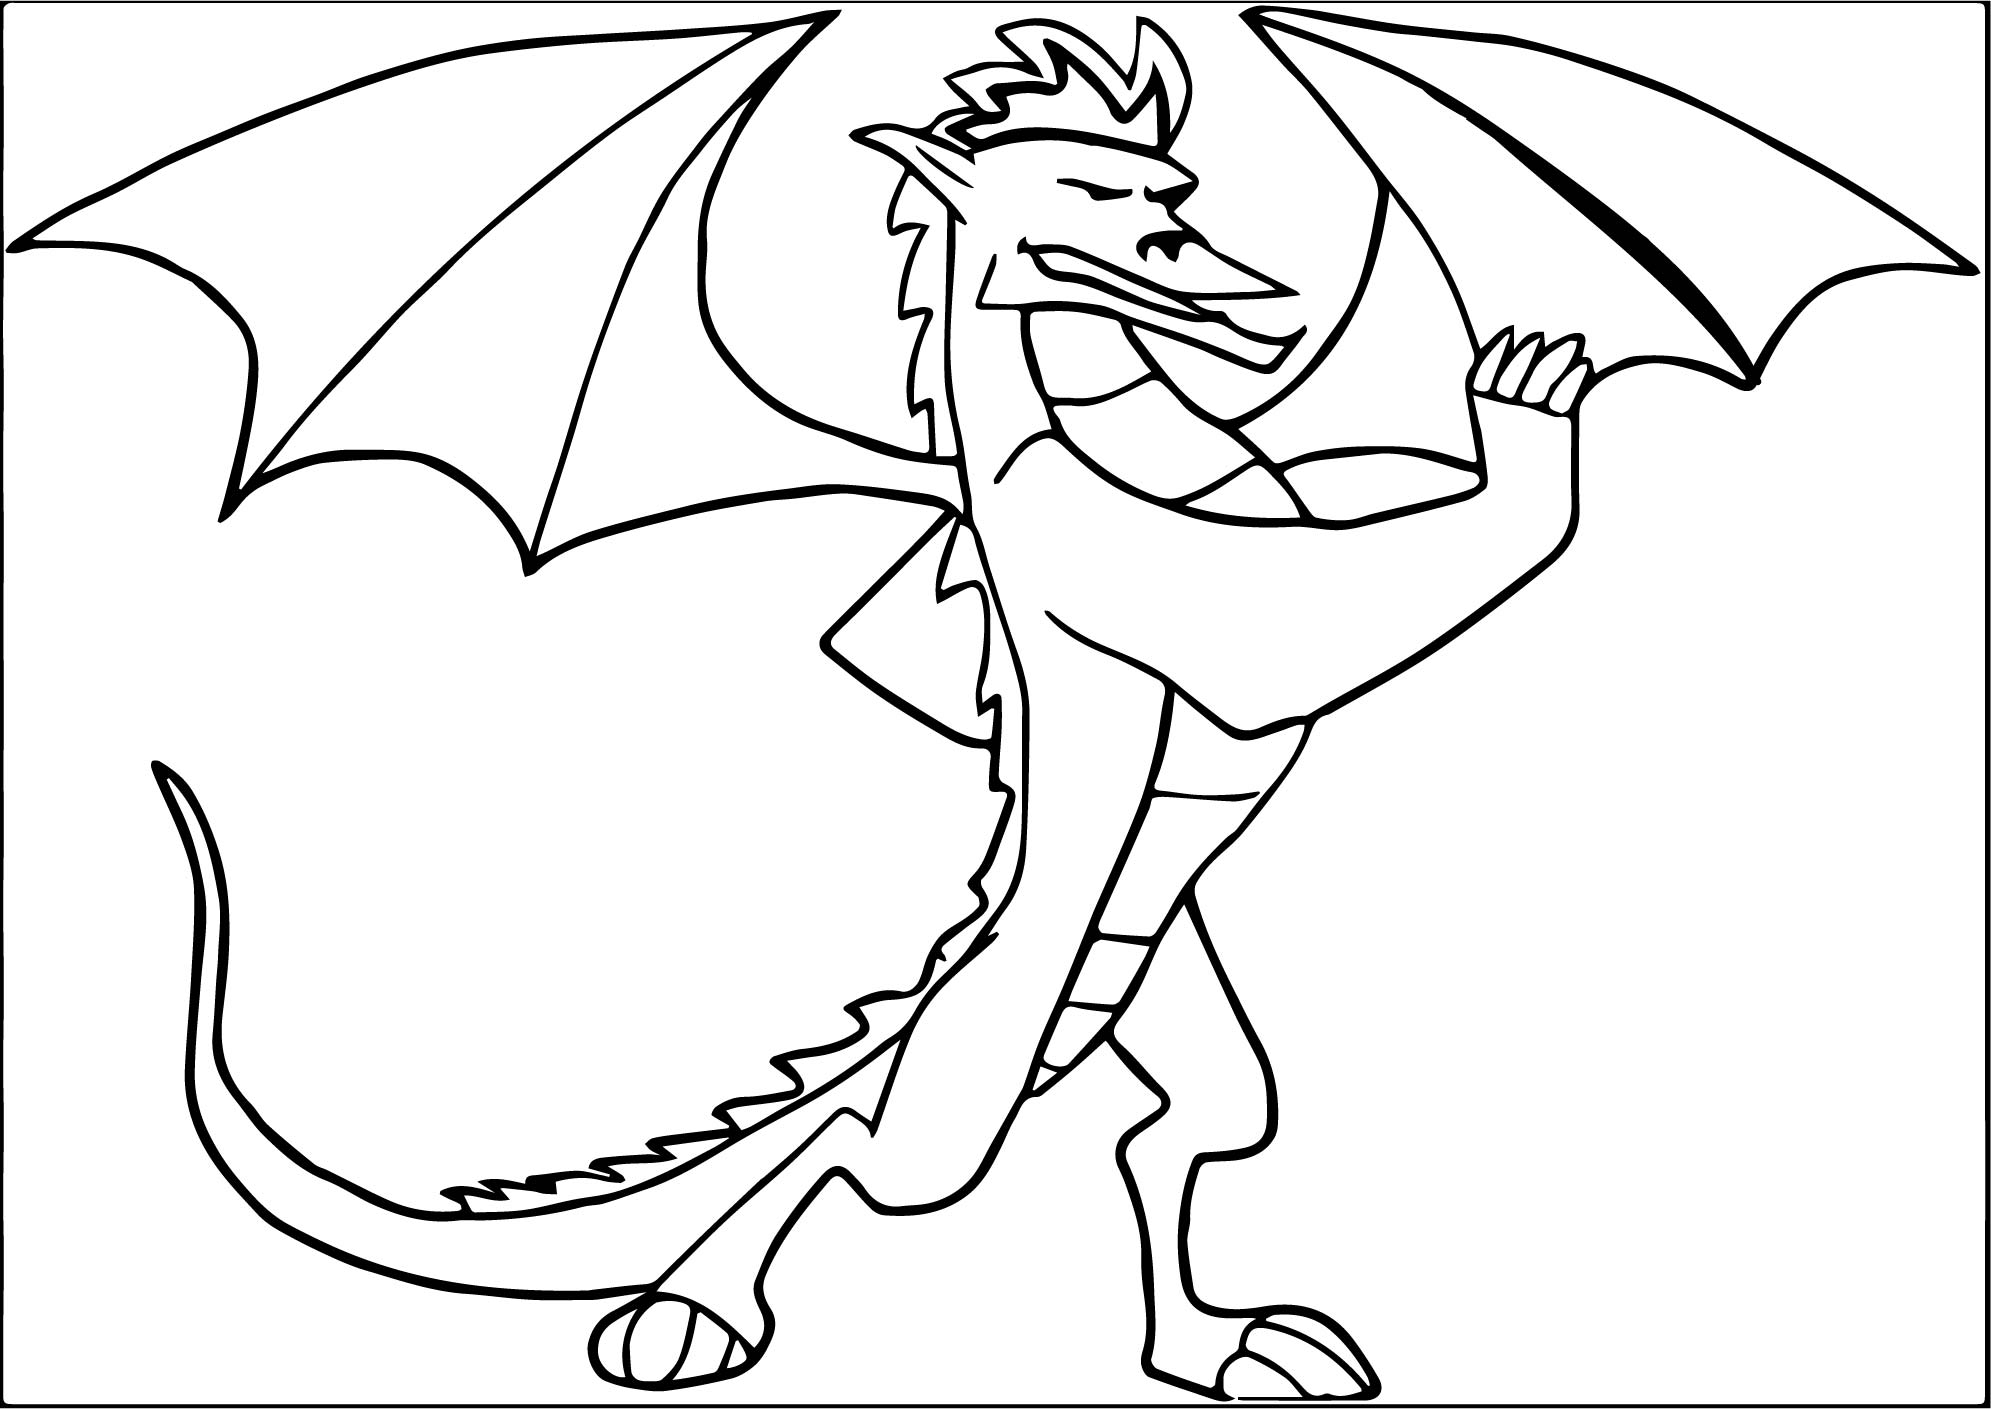 americon dragon coloring pages - photo#18